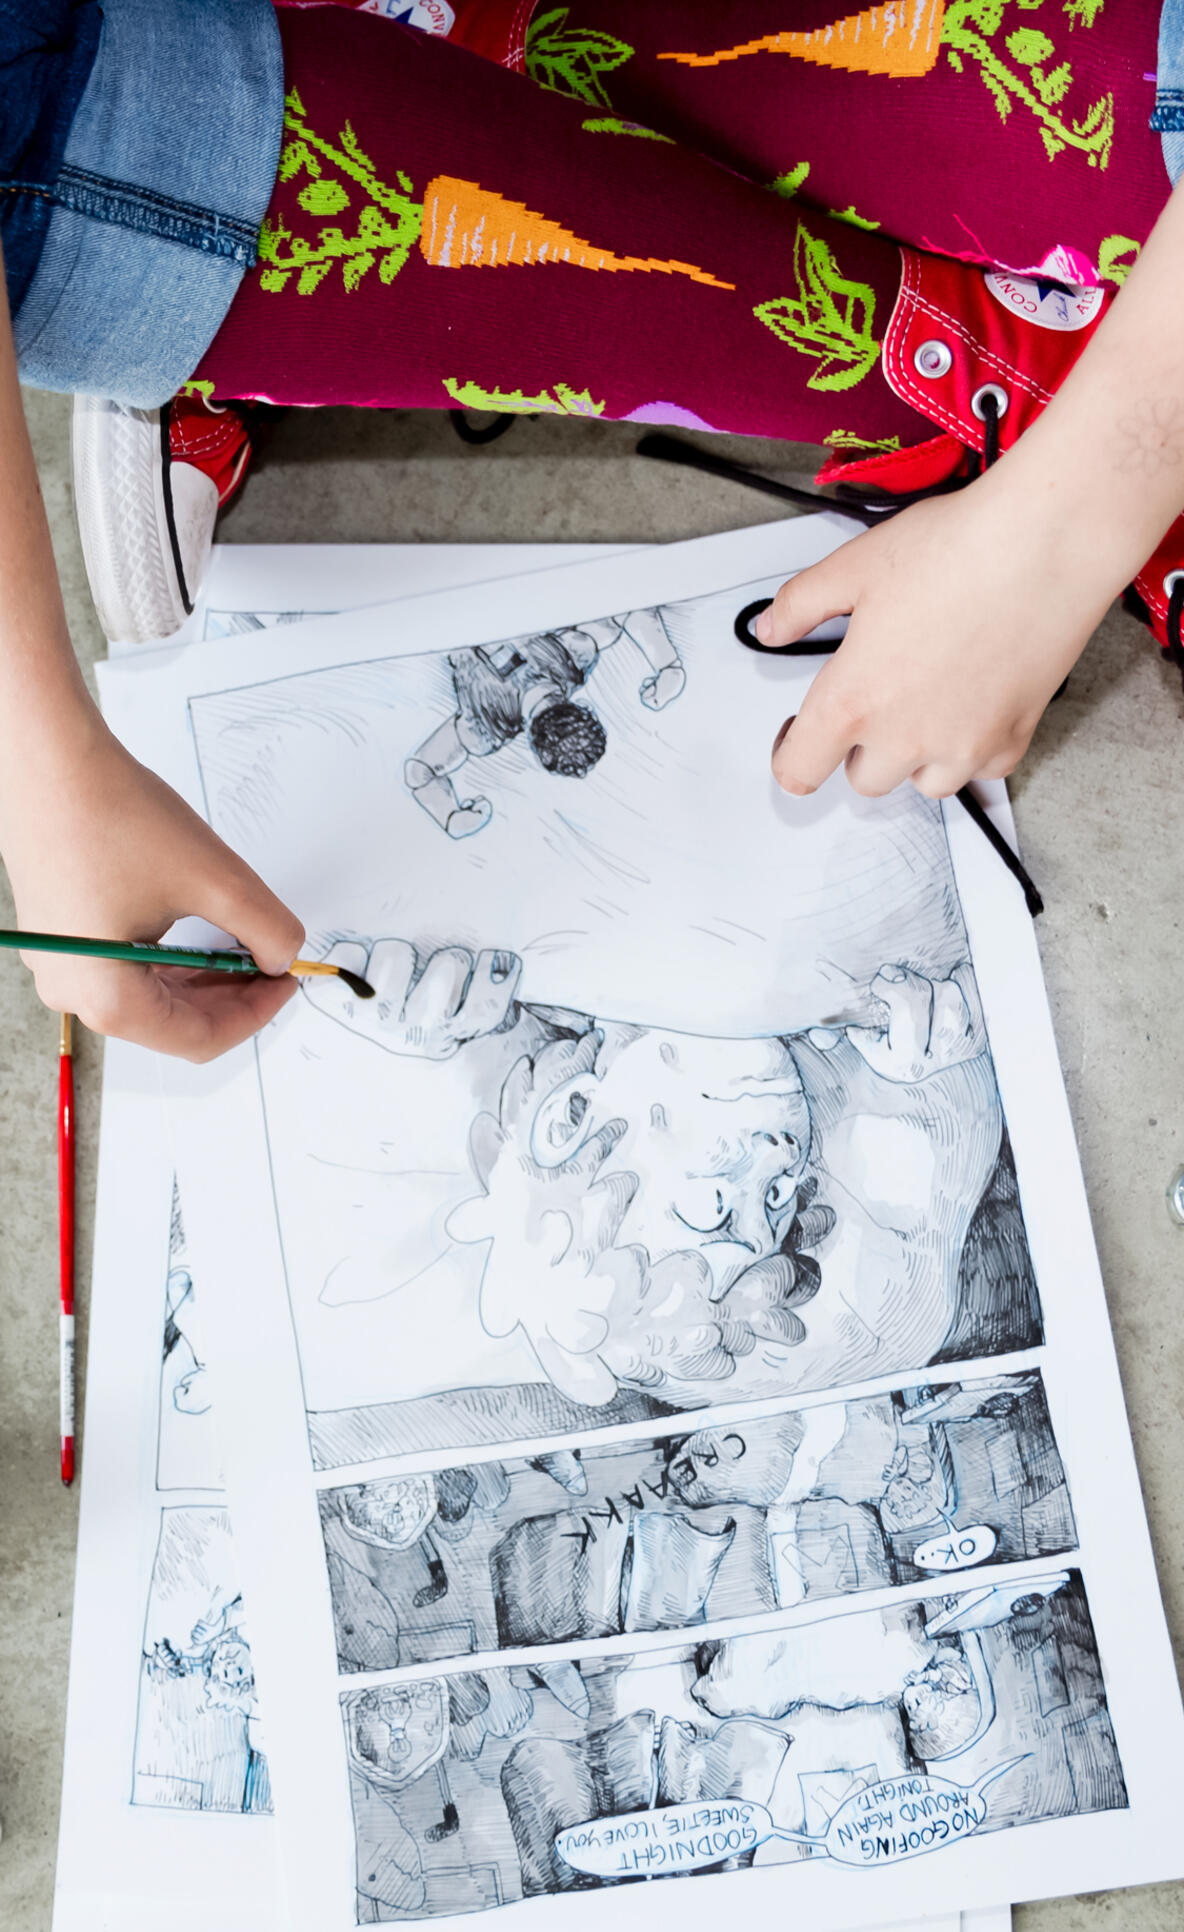 Overview shot of a student painting a comic